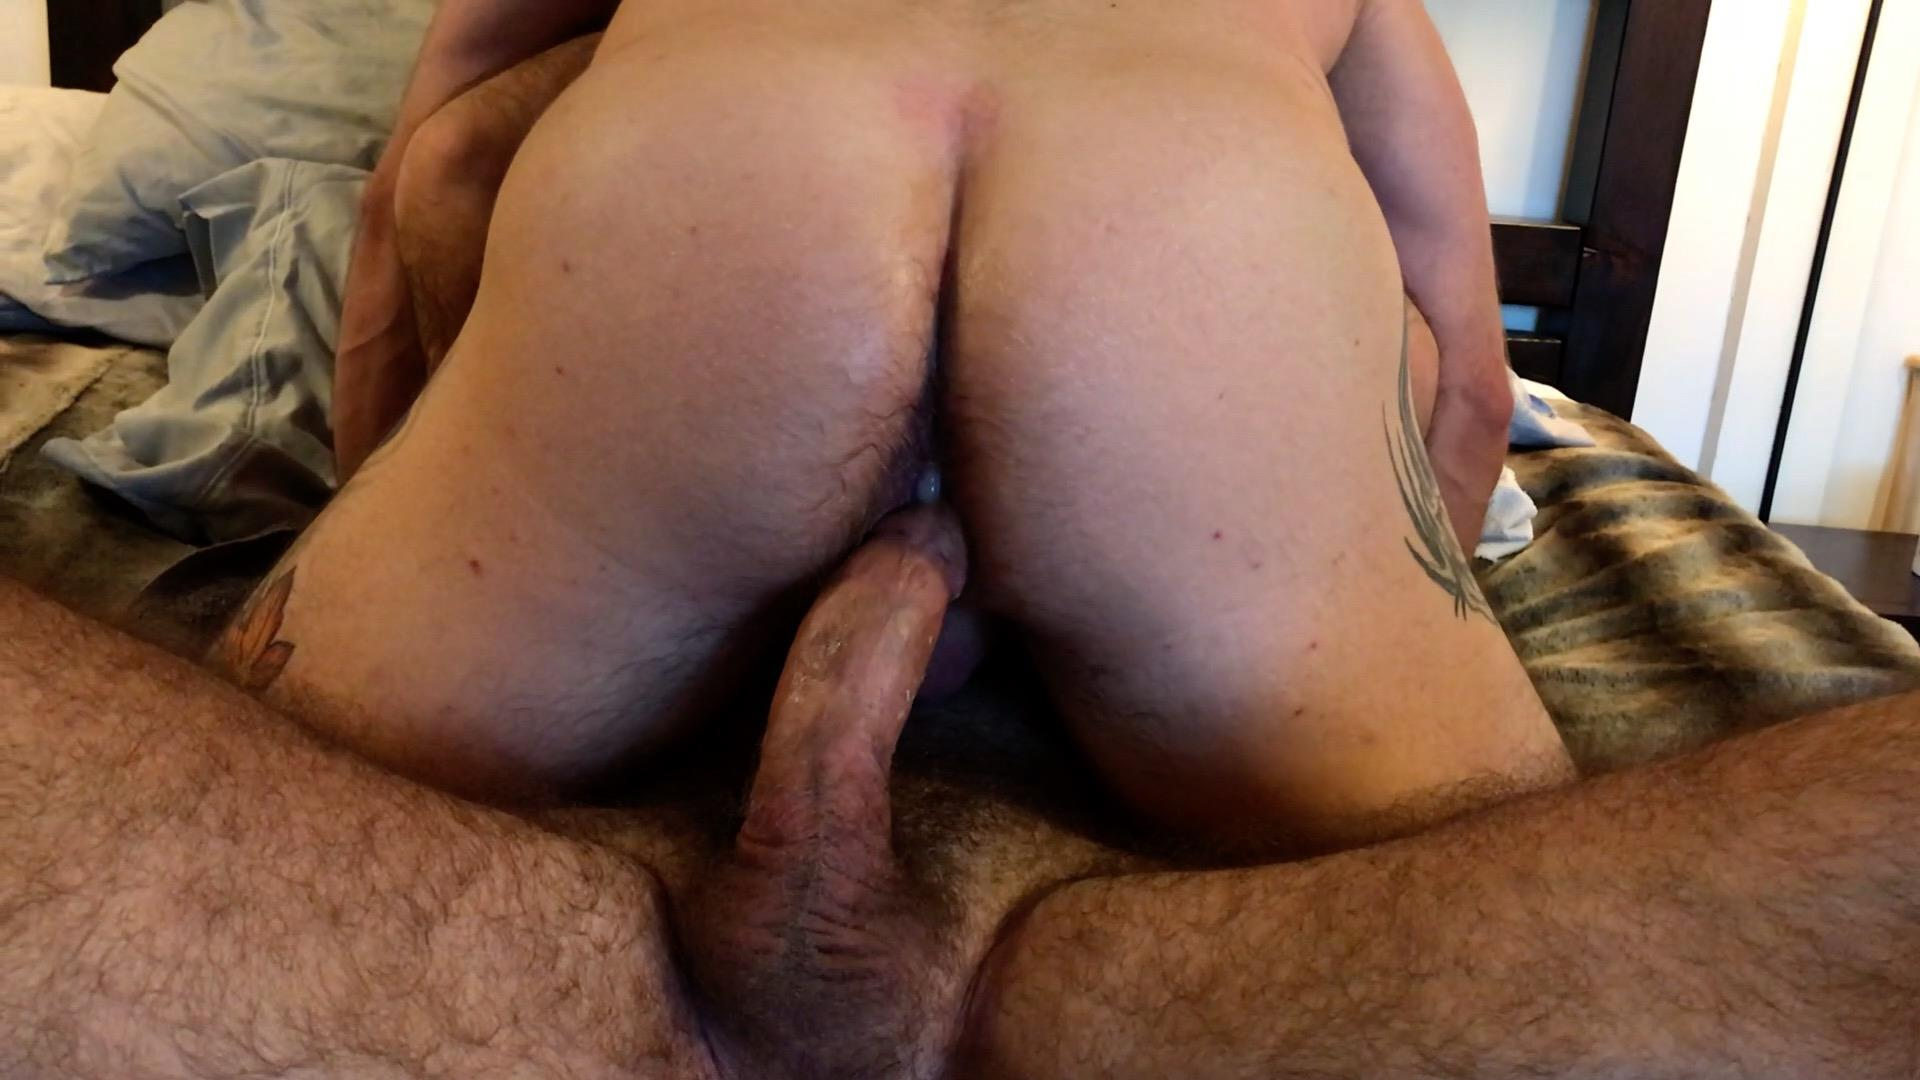 Muscle-Bear-Porn-Liam-Angell-and-Will-Angell-Daddy-Breeding-His-Boy-Gay-Sex-Video-07 Hairy Muscle Bear Daddy Will Angell Shares His Boy With A Hot Latino Top